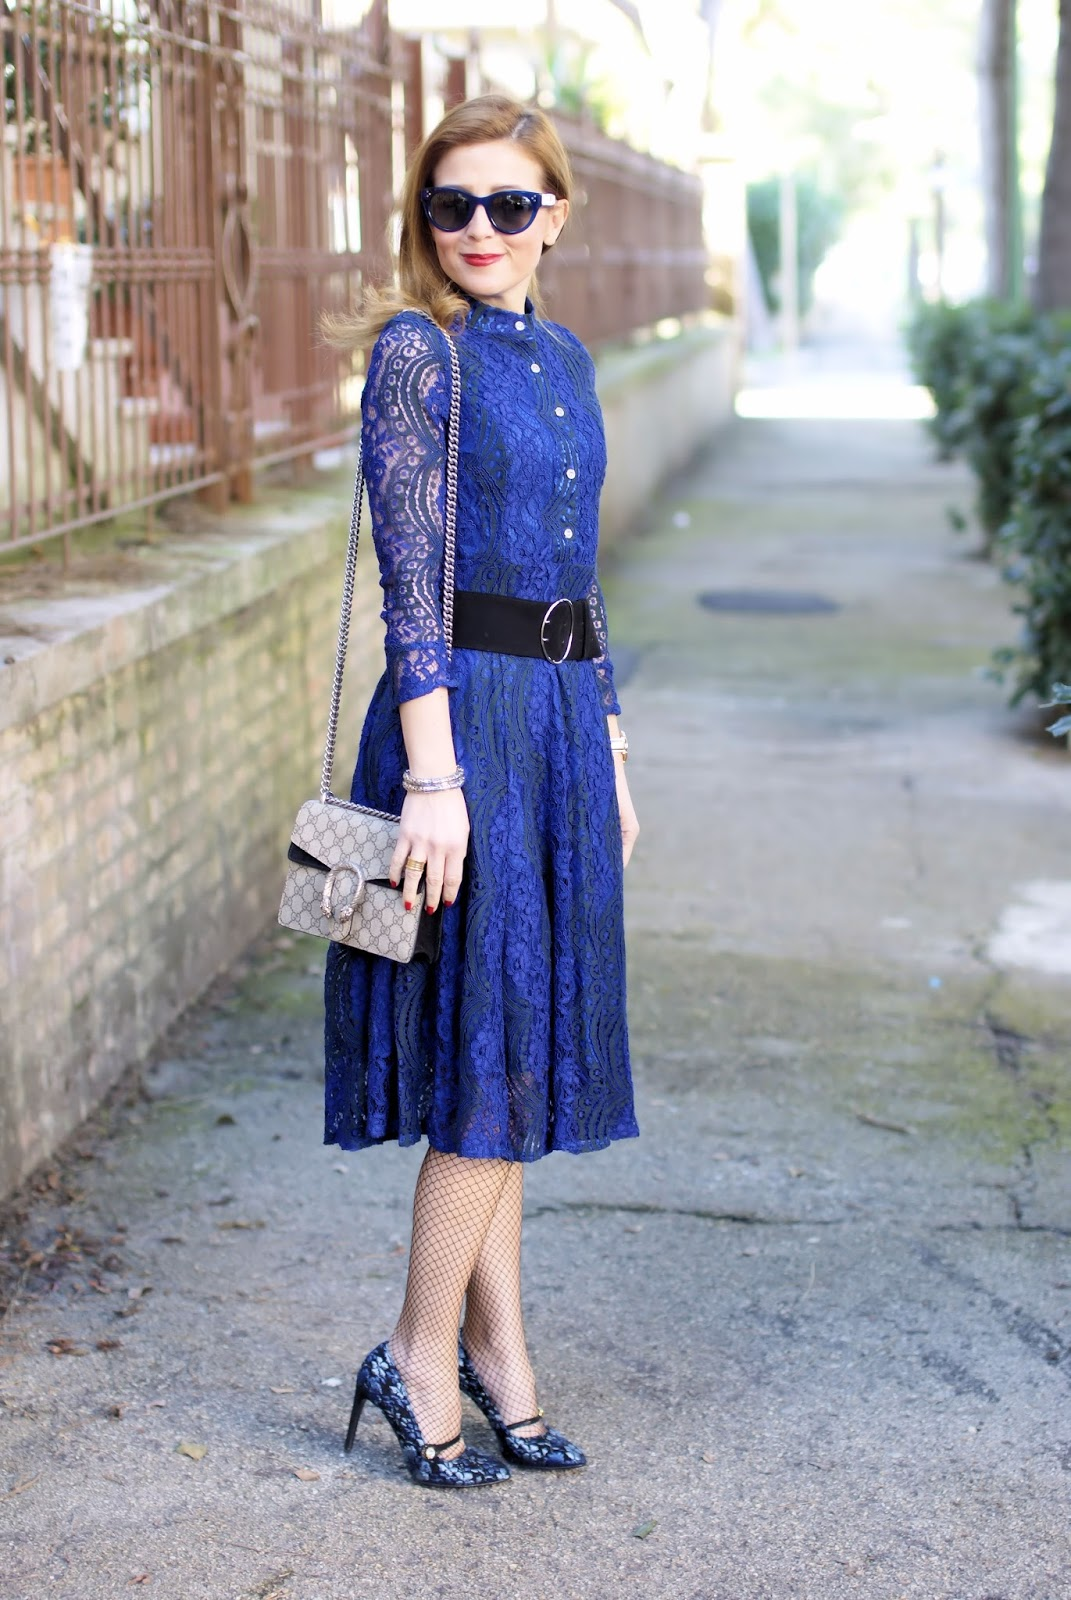 What to wear on Easter: my outfit idea with a blue lace dress and fishnets on Fashion and Cookies fashion blog, fashion blogger style